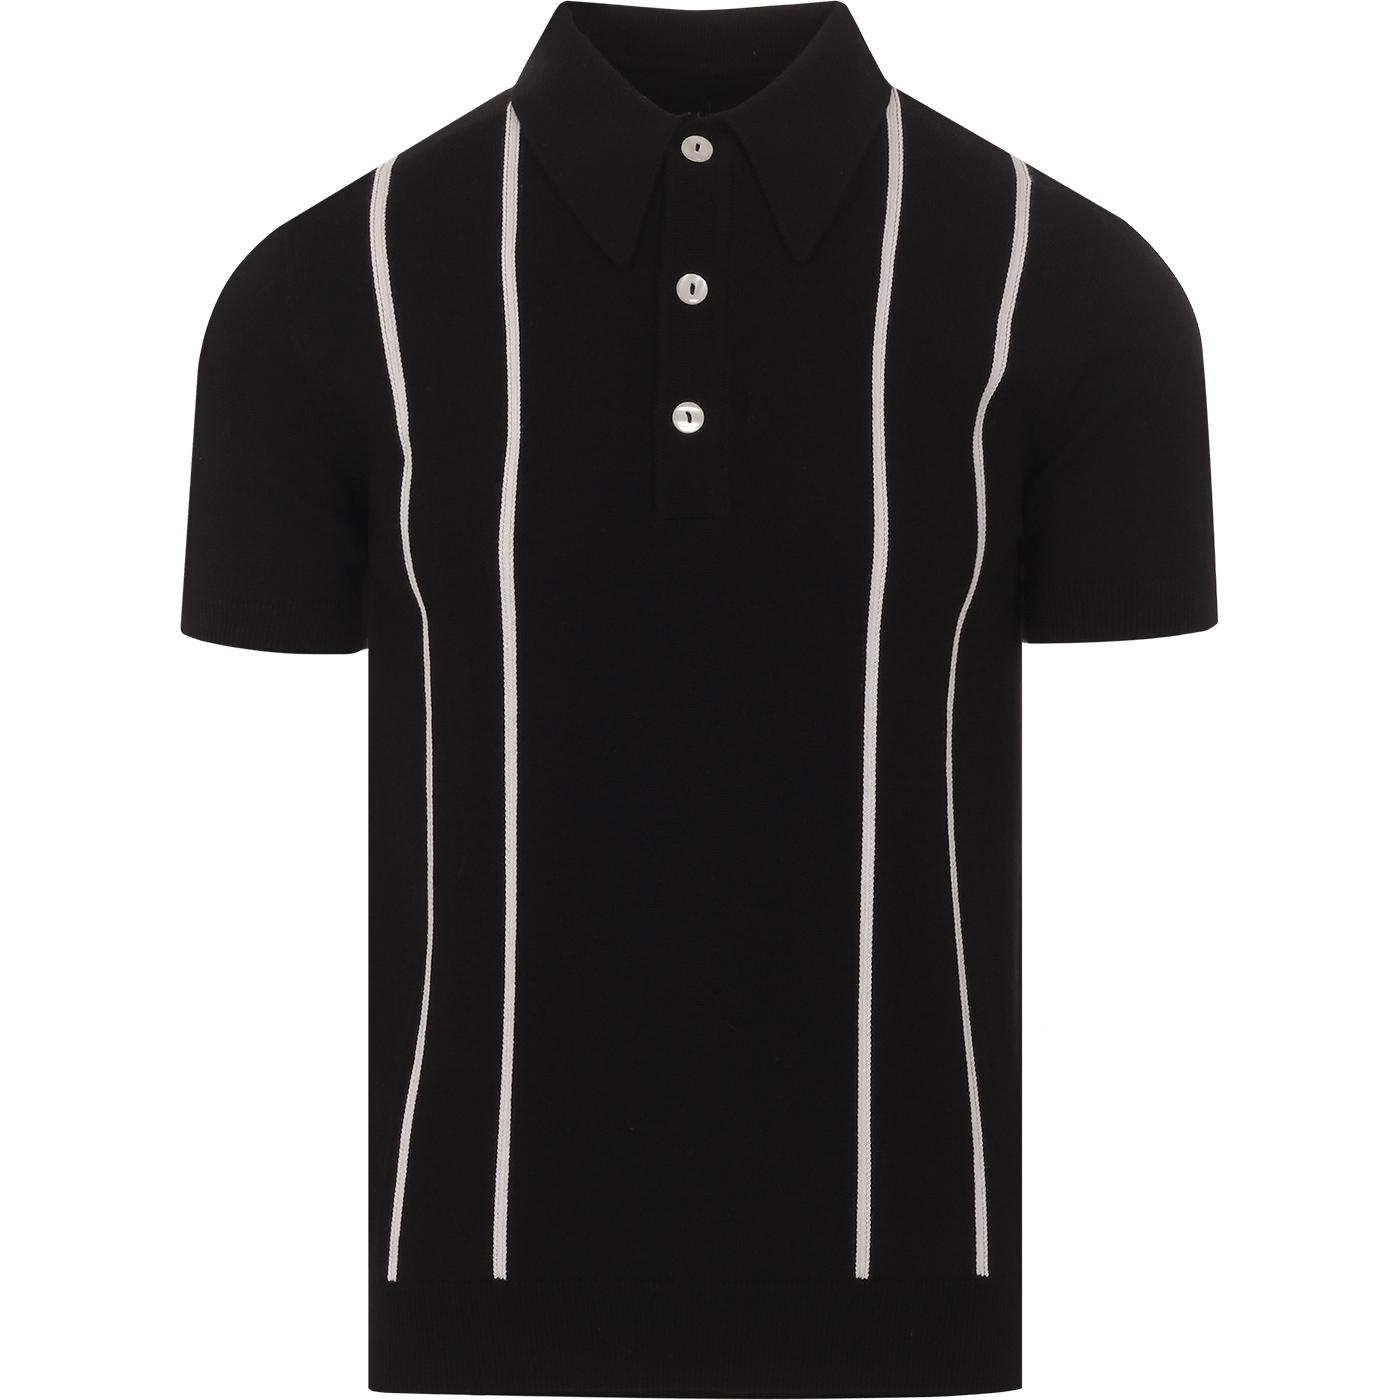 SKA & SOUL Mod Stripe Spear Collar Knit Polo Black